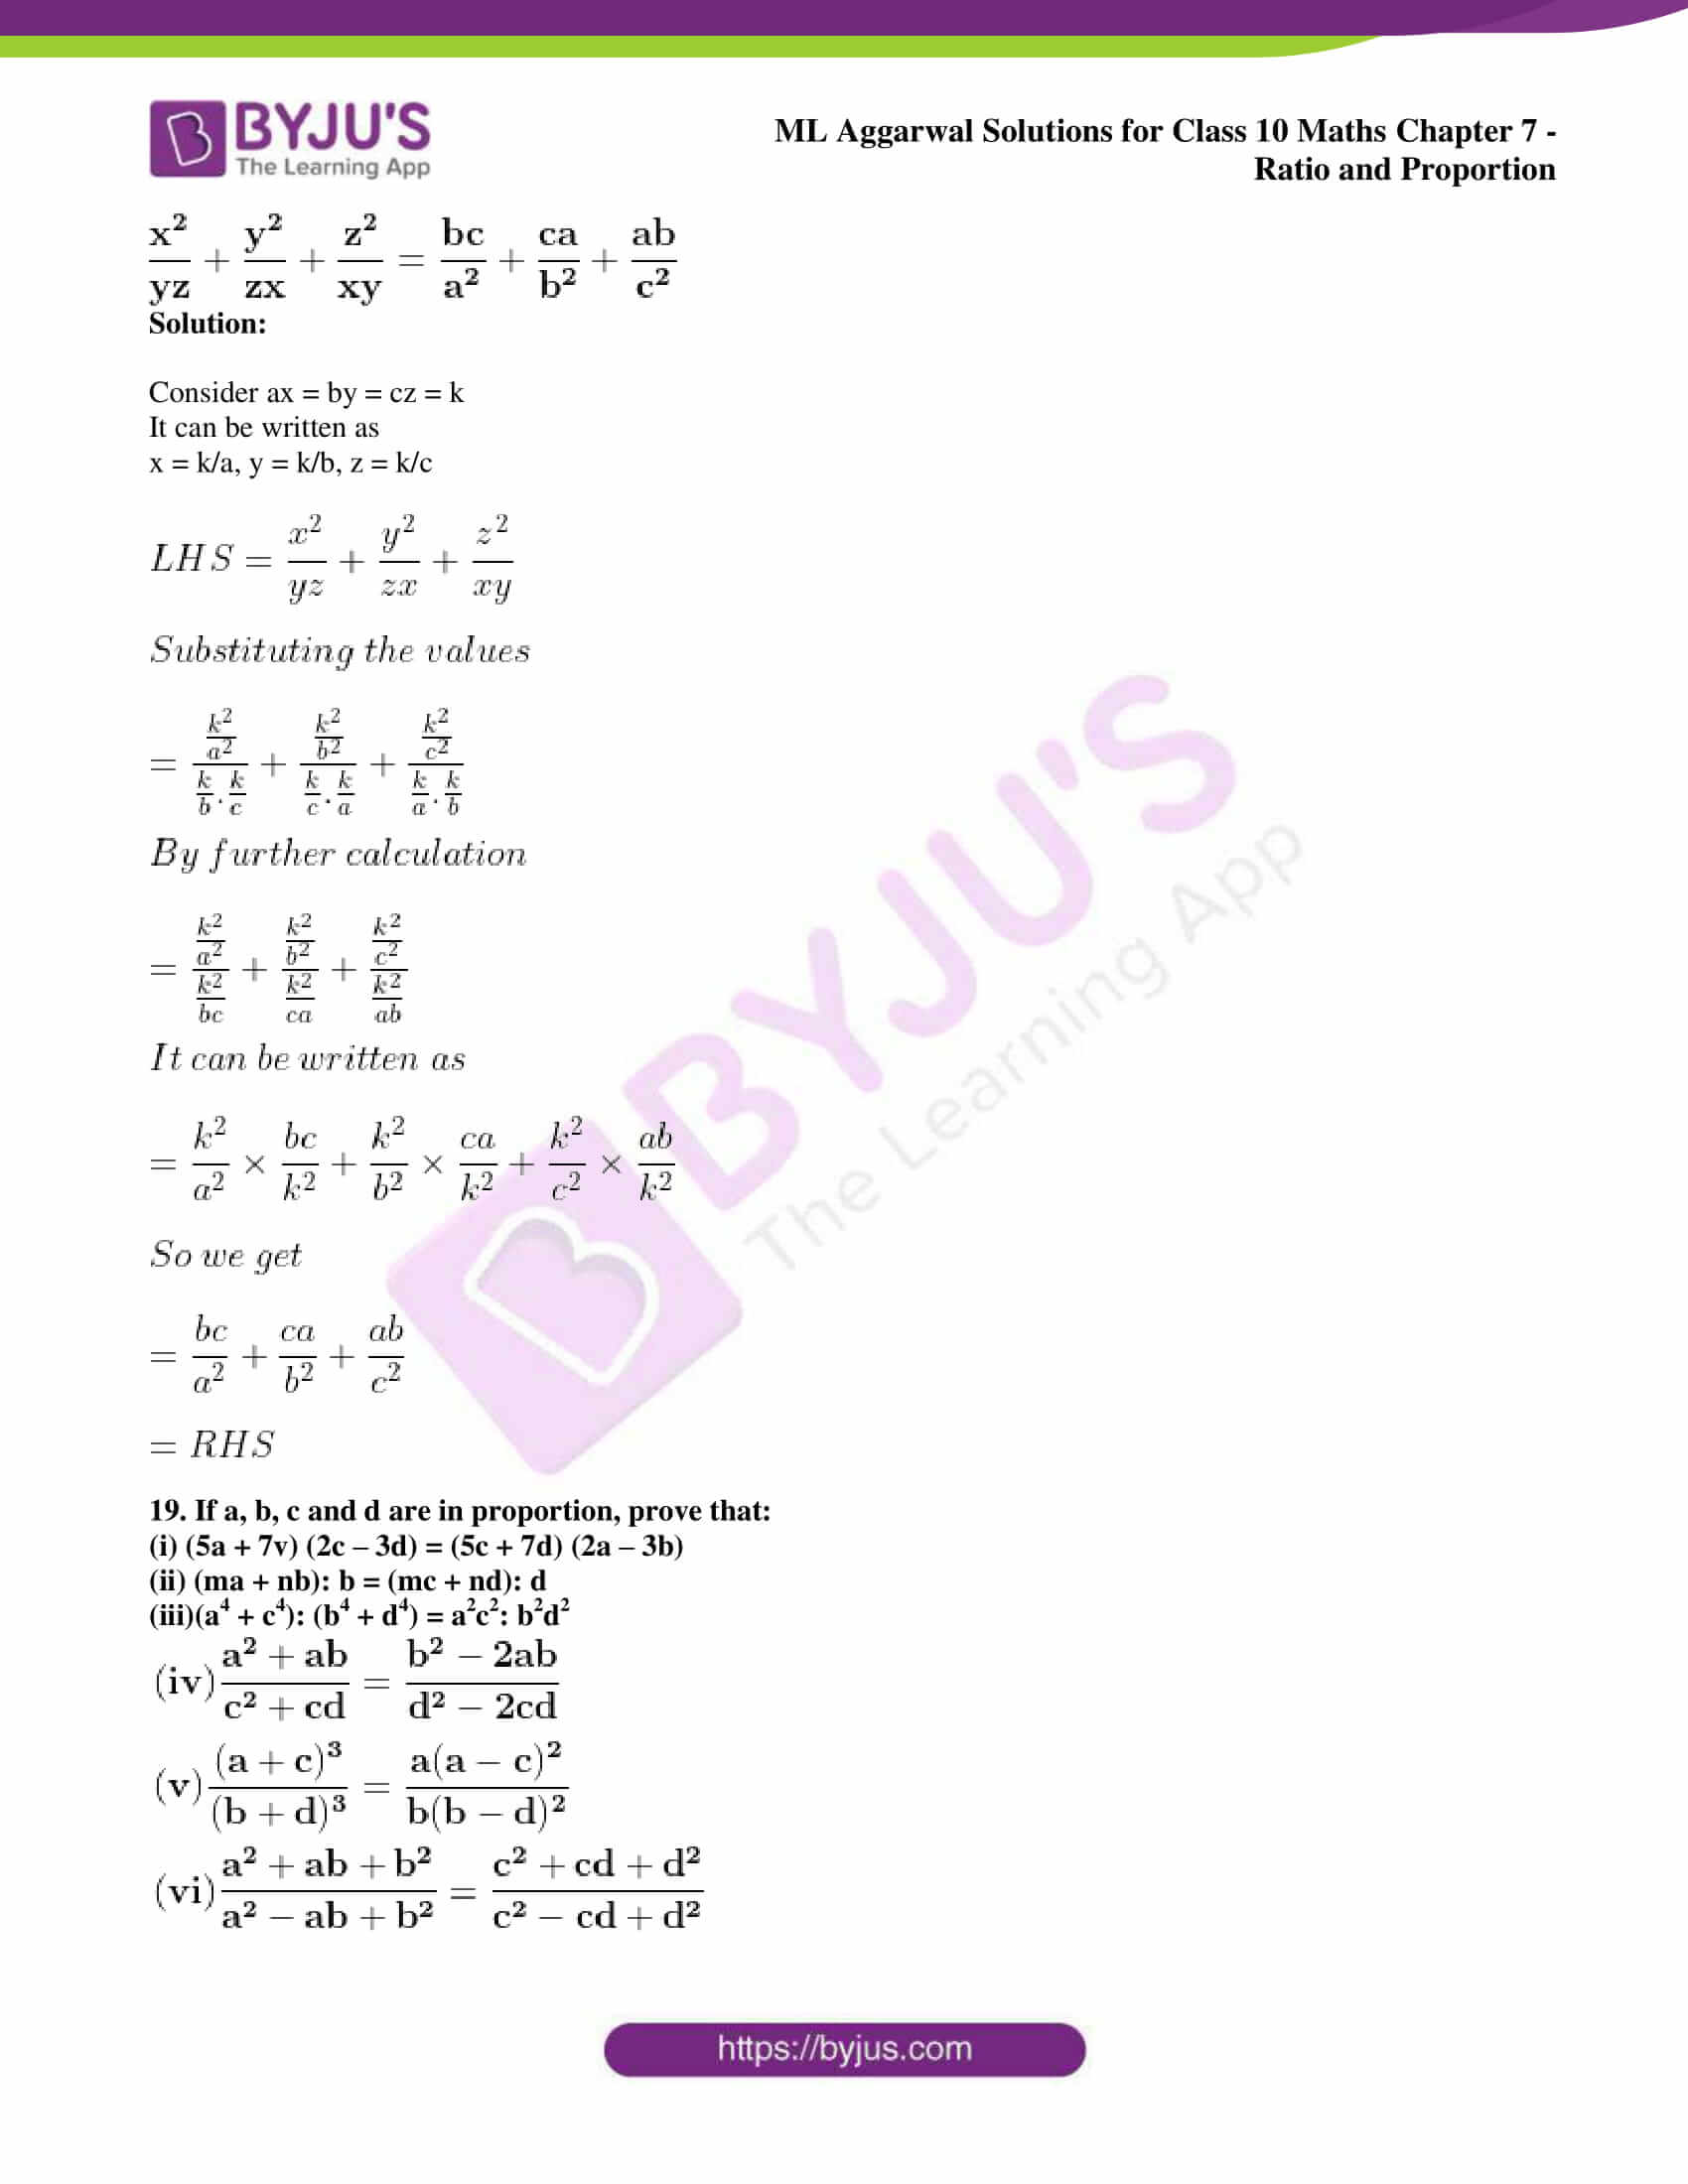 ml aggarwal solutions for class 10 maths chapter 7 28